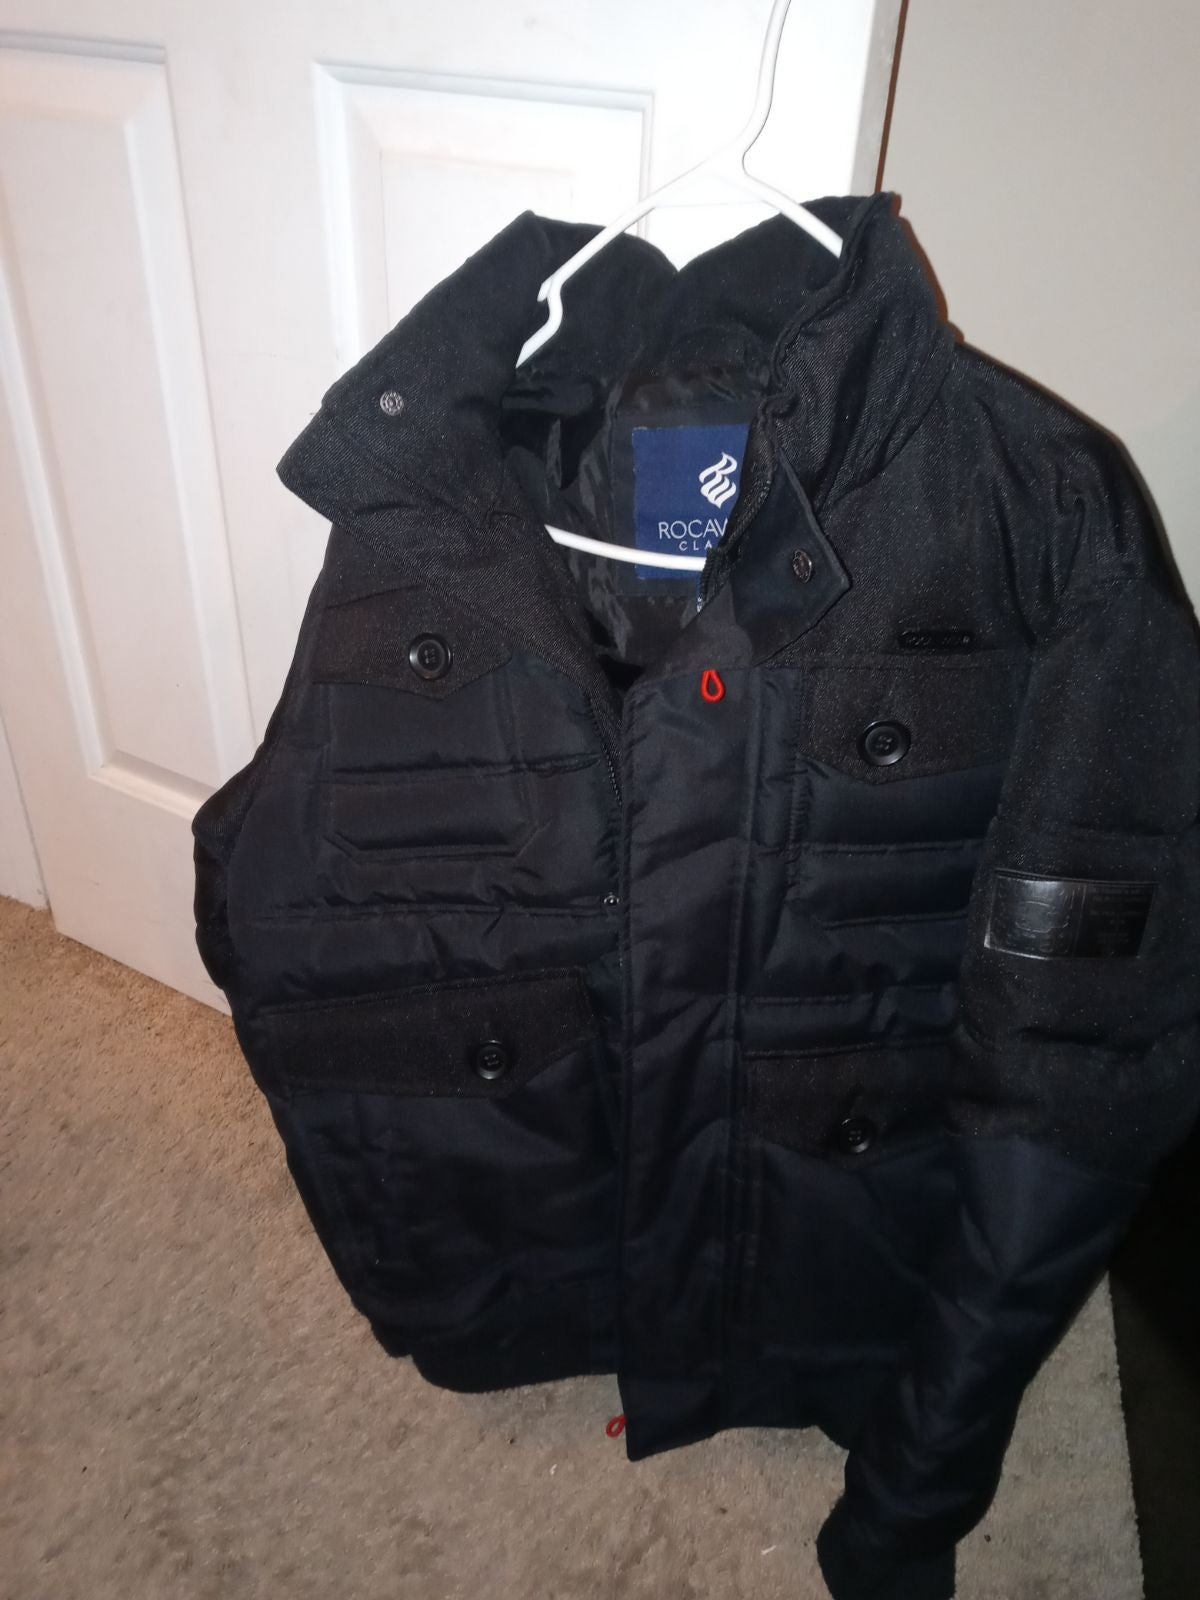 Rocawear Jacket for teenagers